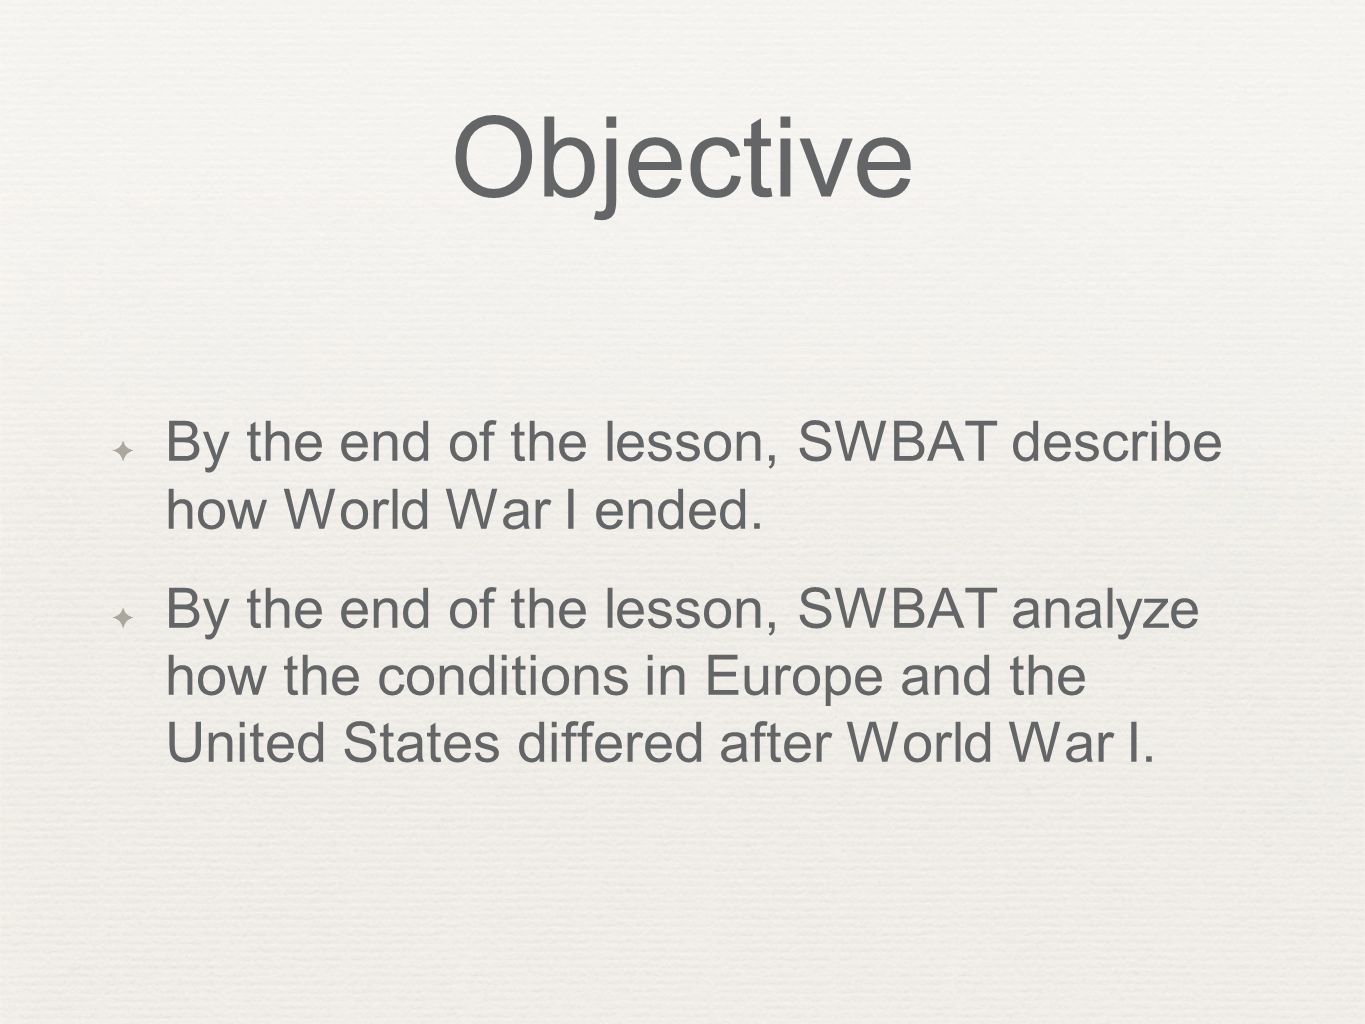 Review ✦ Where did World War I mainly take place? ✦ What were the two sides of World War I?